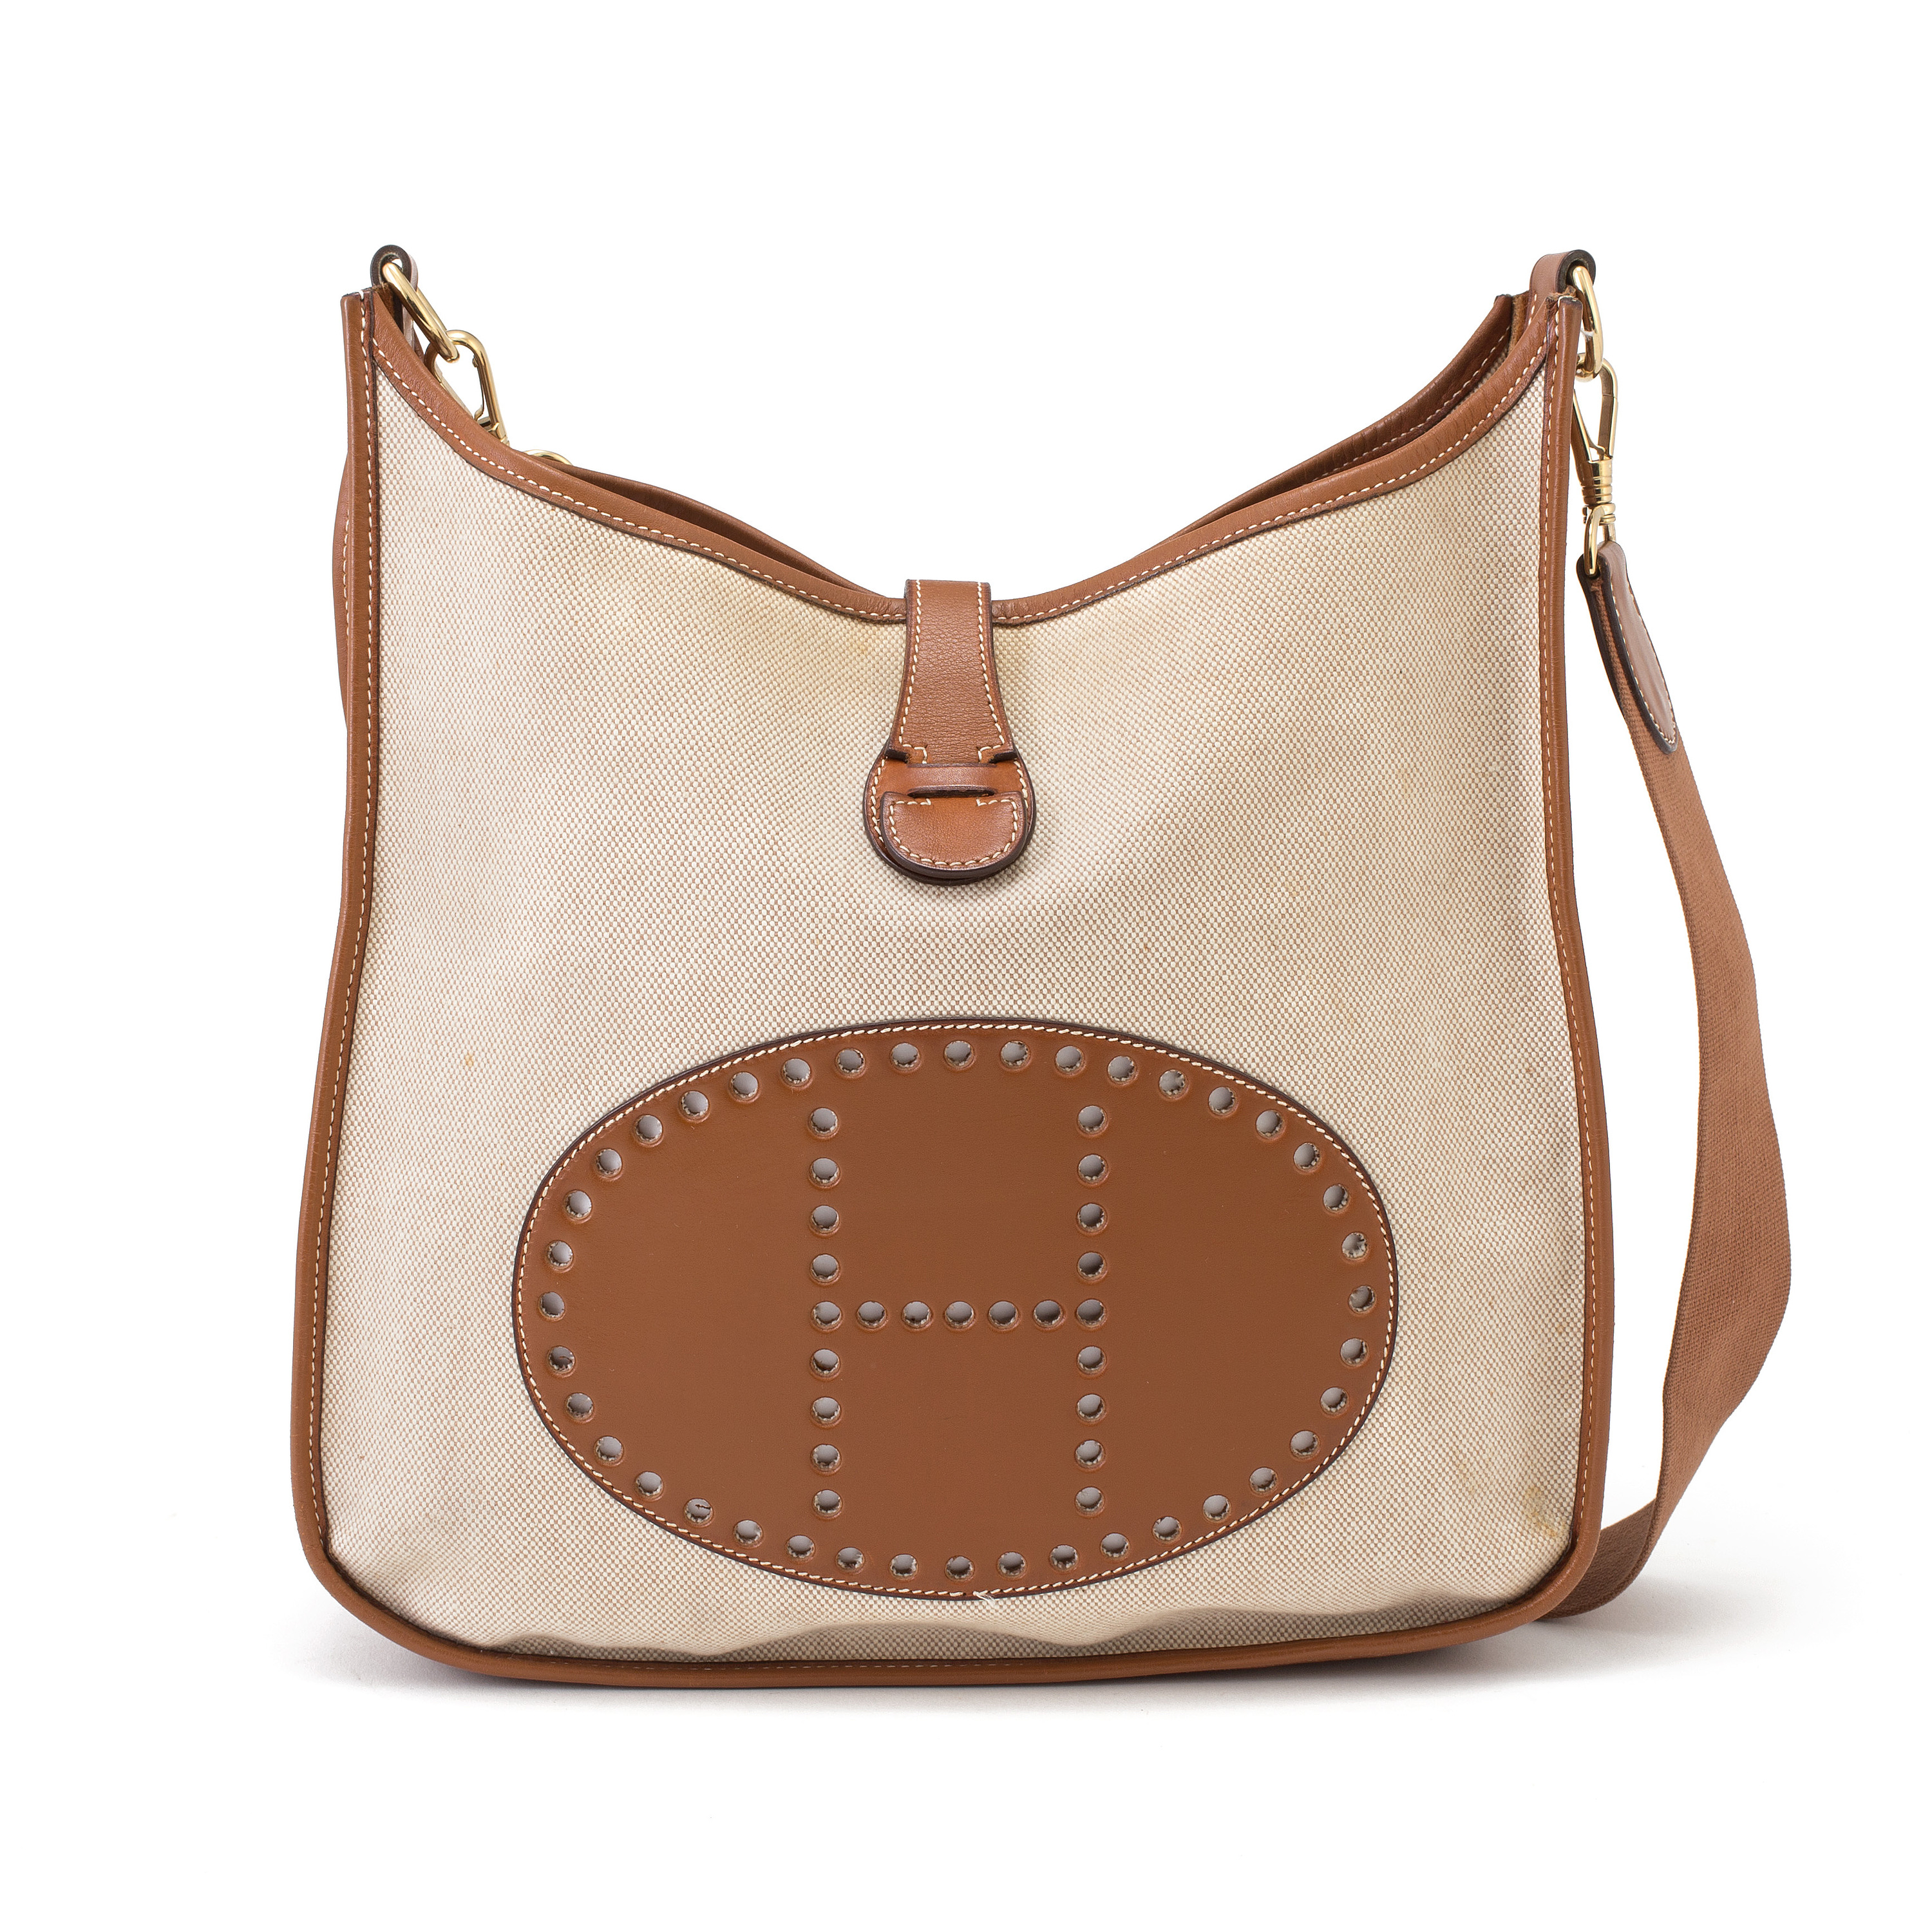 shopping hermes evelyne pm bag price home be408 7e114 b3d5947adce91